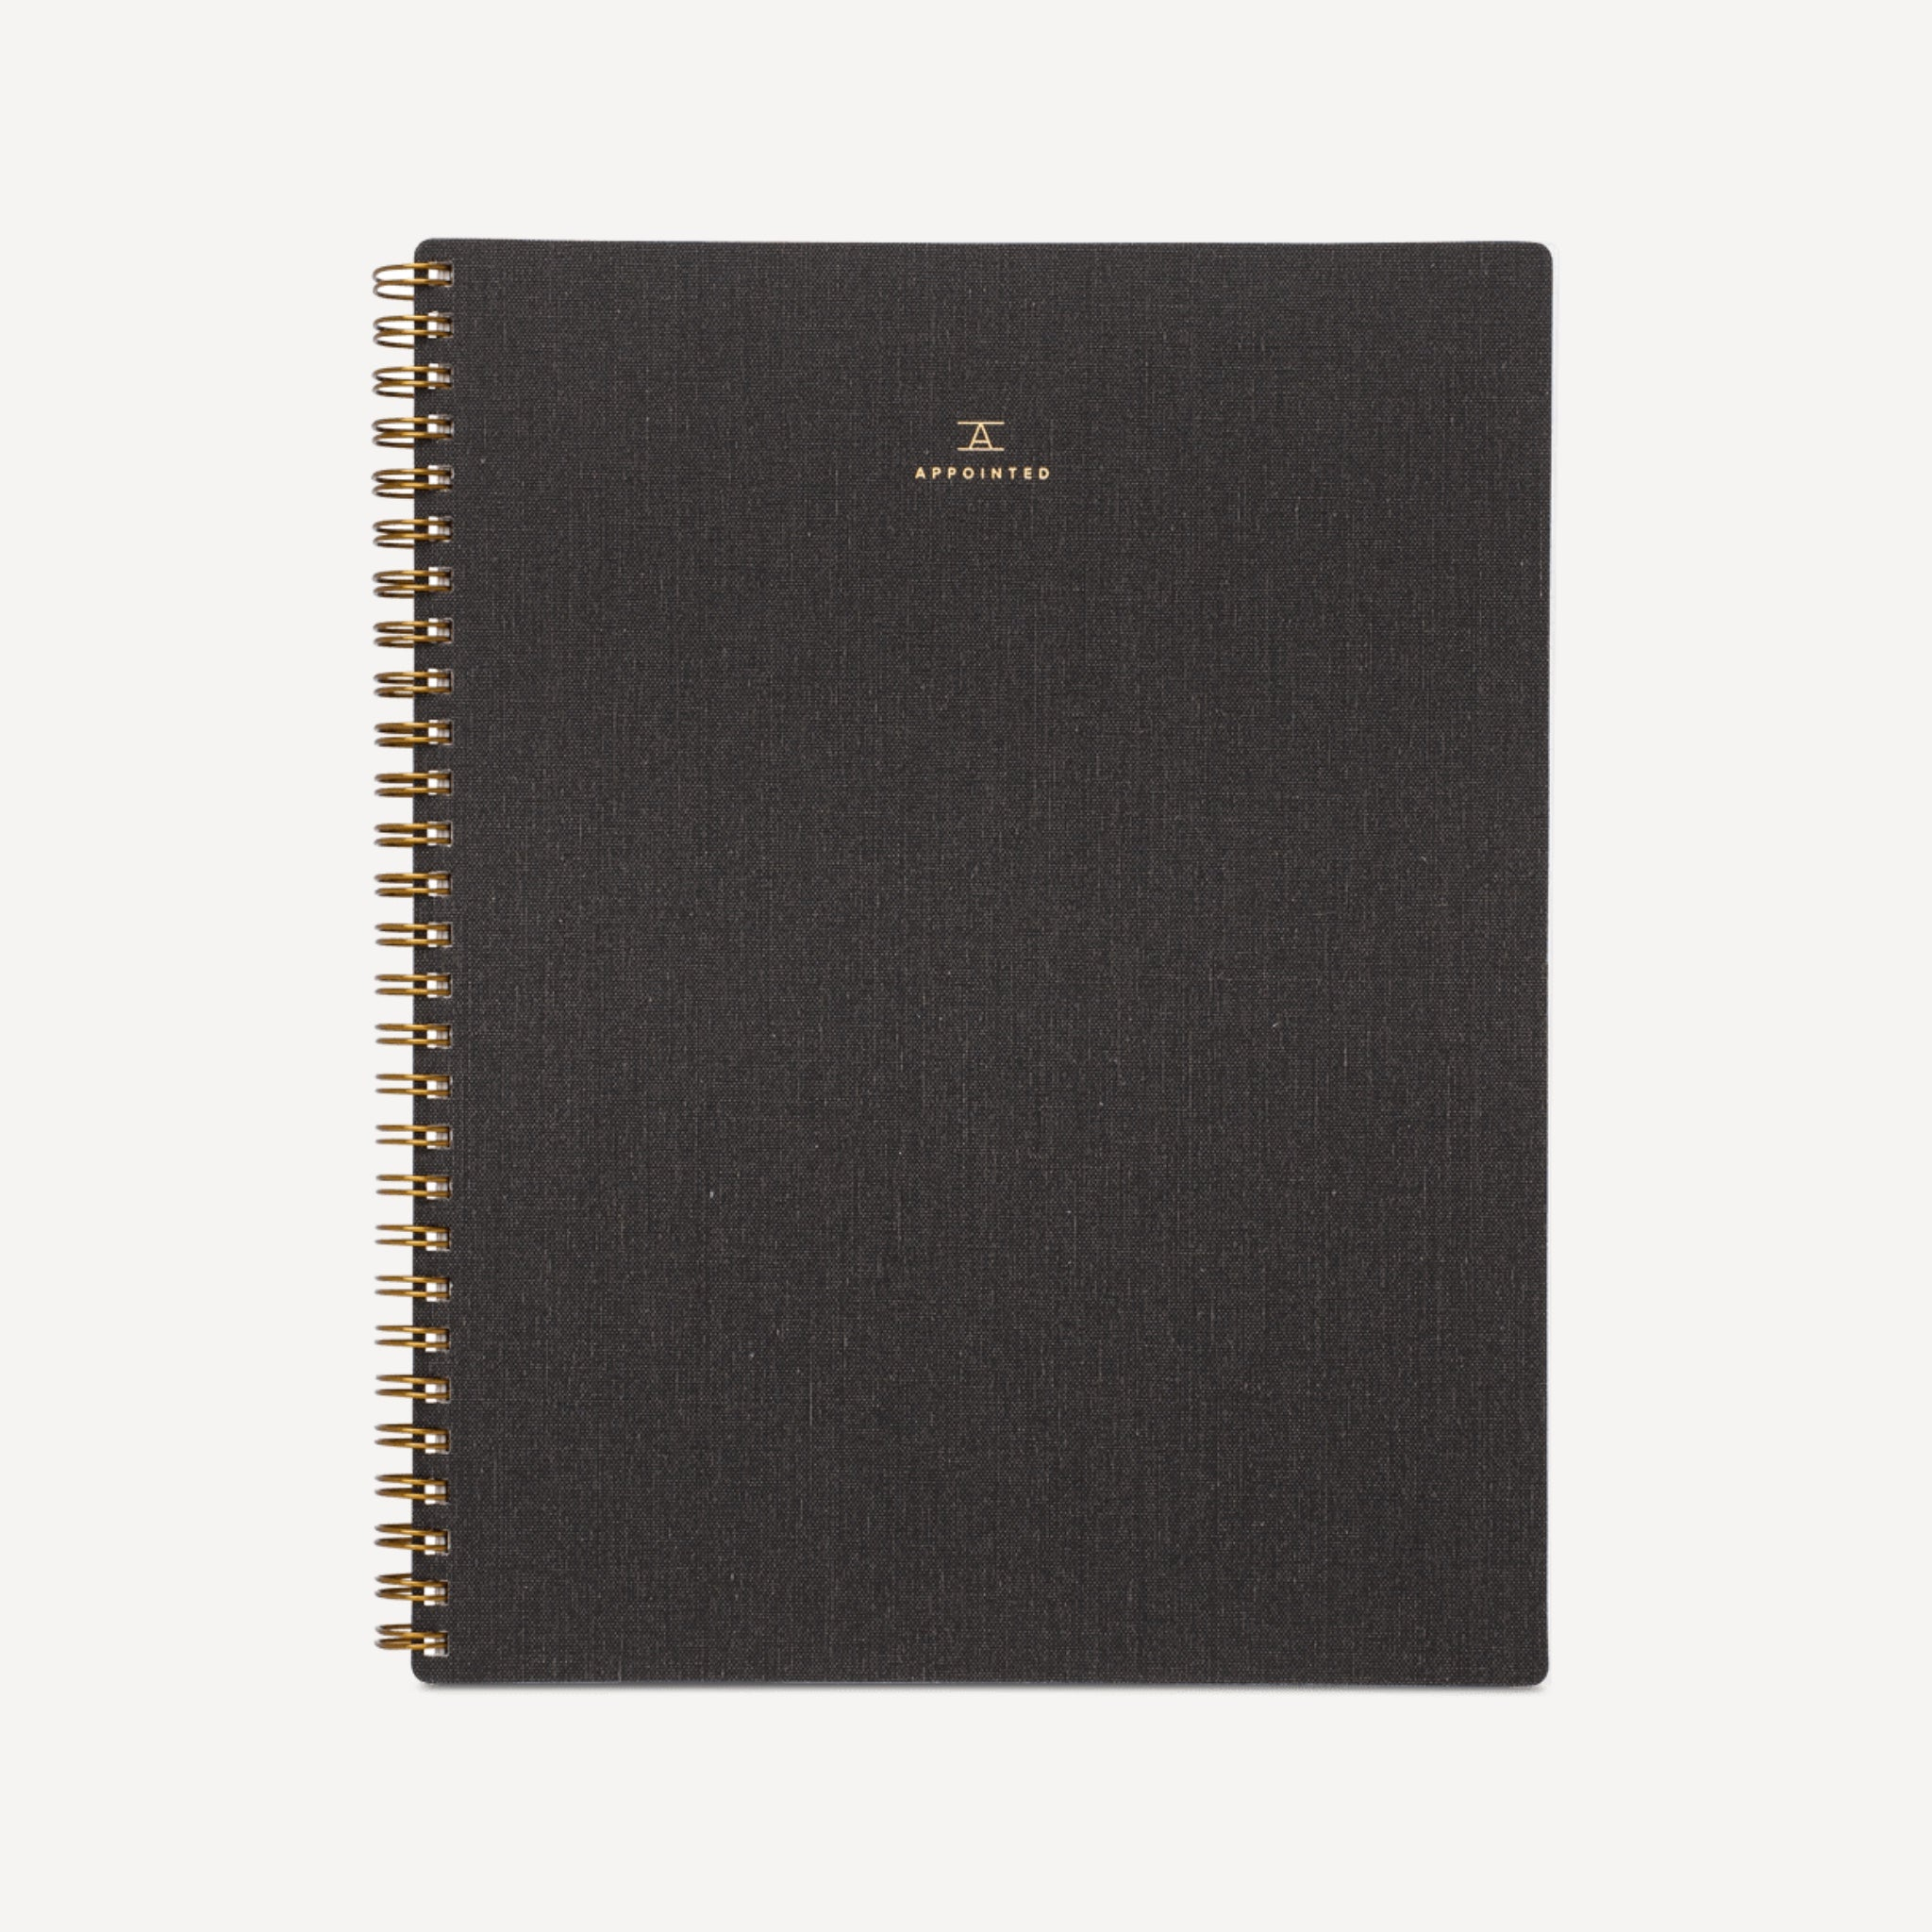 B6 Notebook - Charcoal Grey